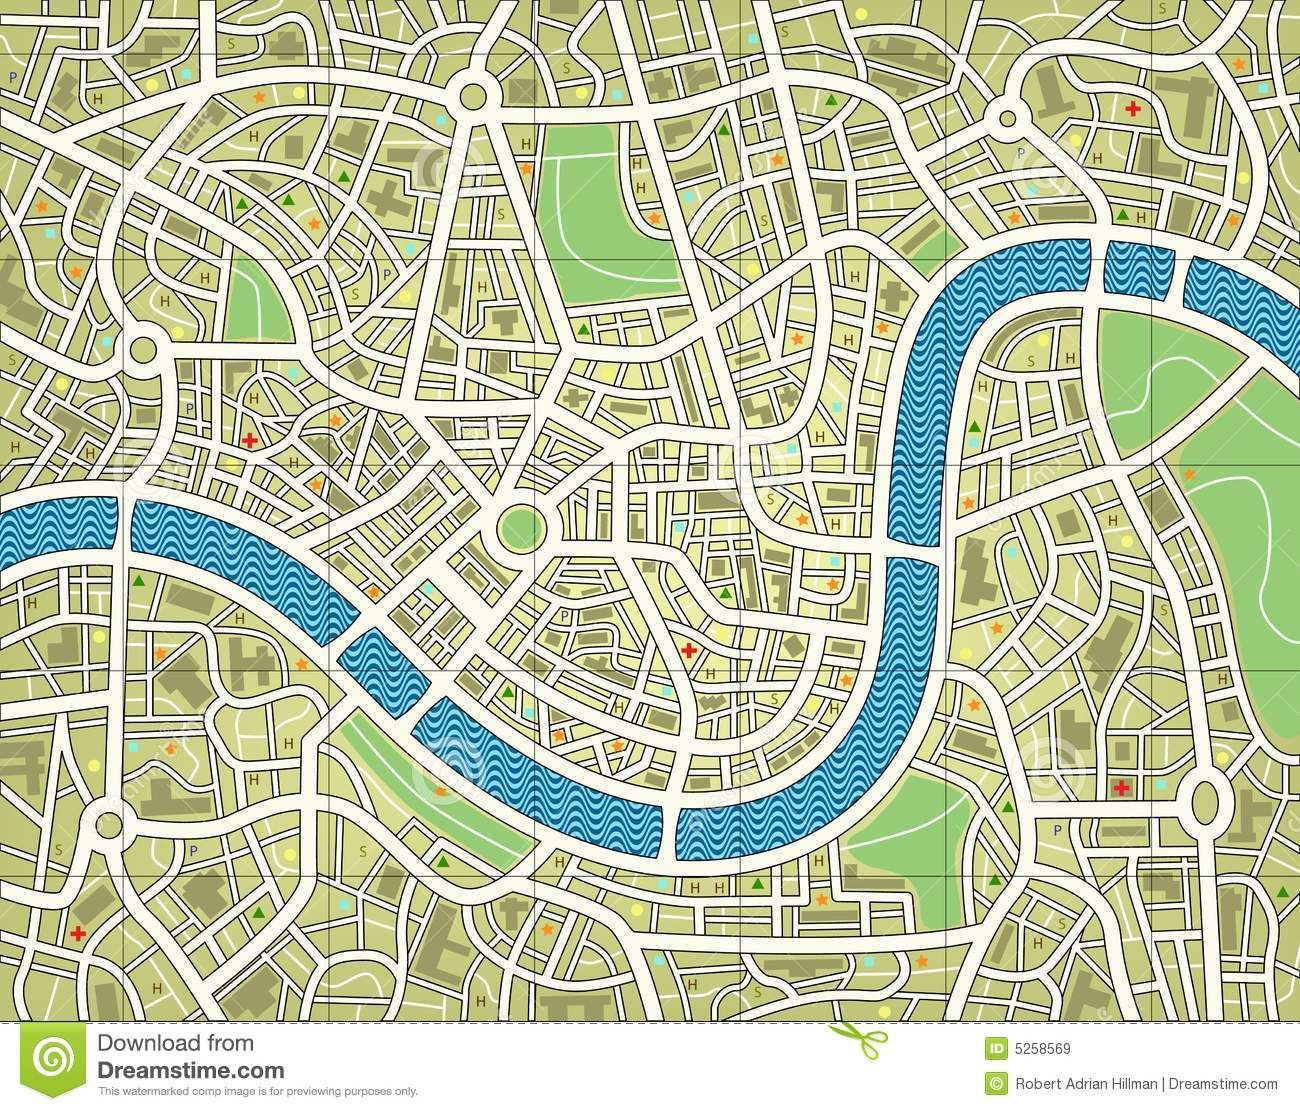 Aerial view paper clipart clip kids+road+map+clipart | law and order: fairy tale unit | Map vector ... clip